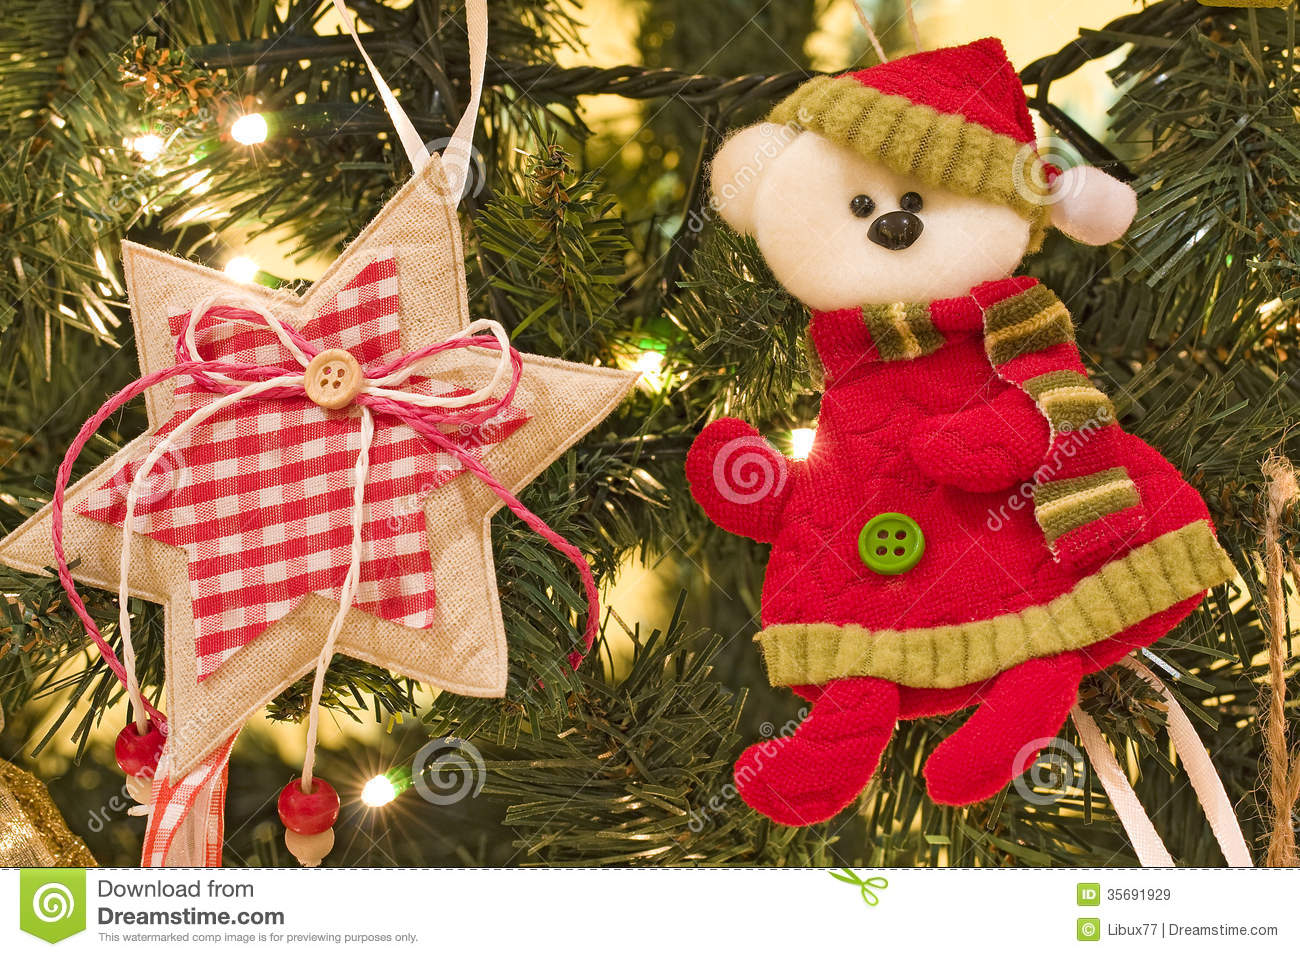 Decorative items on christmas tree closeup royalty free for Christmas tree items list